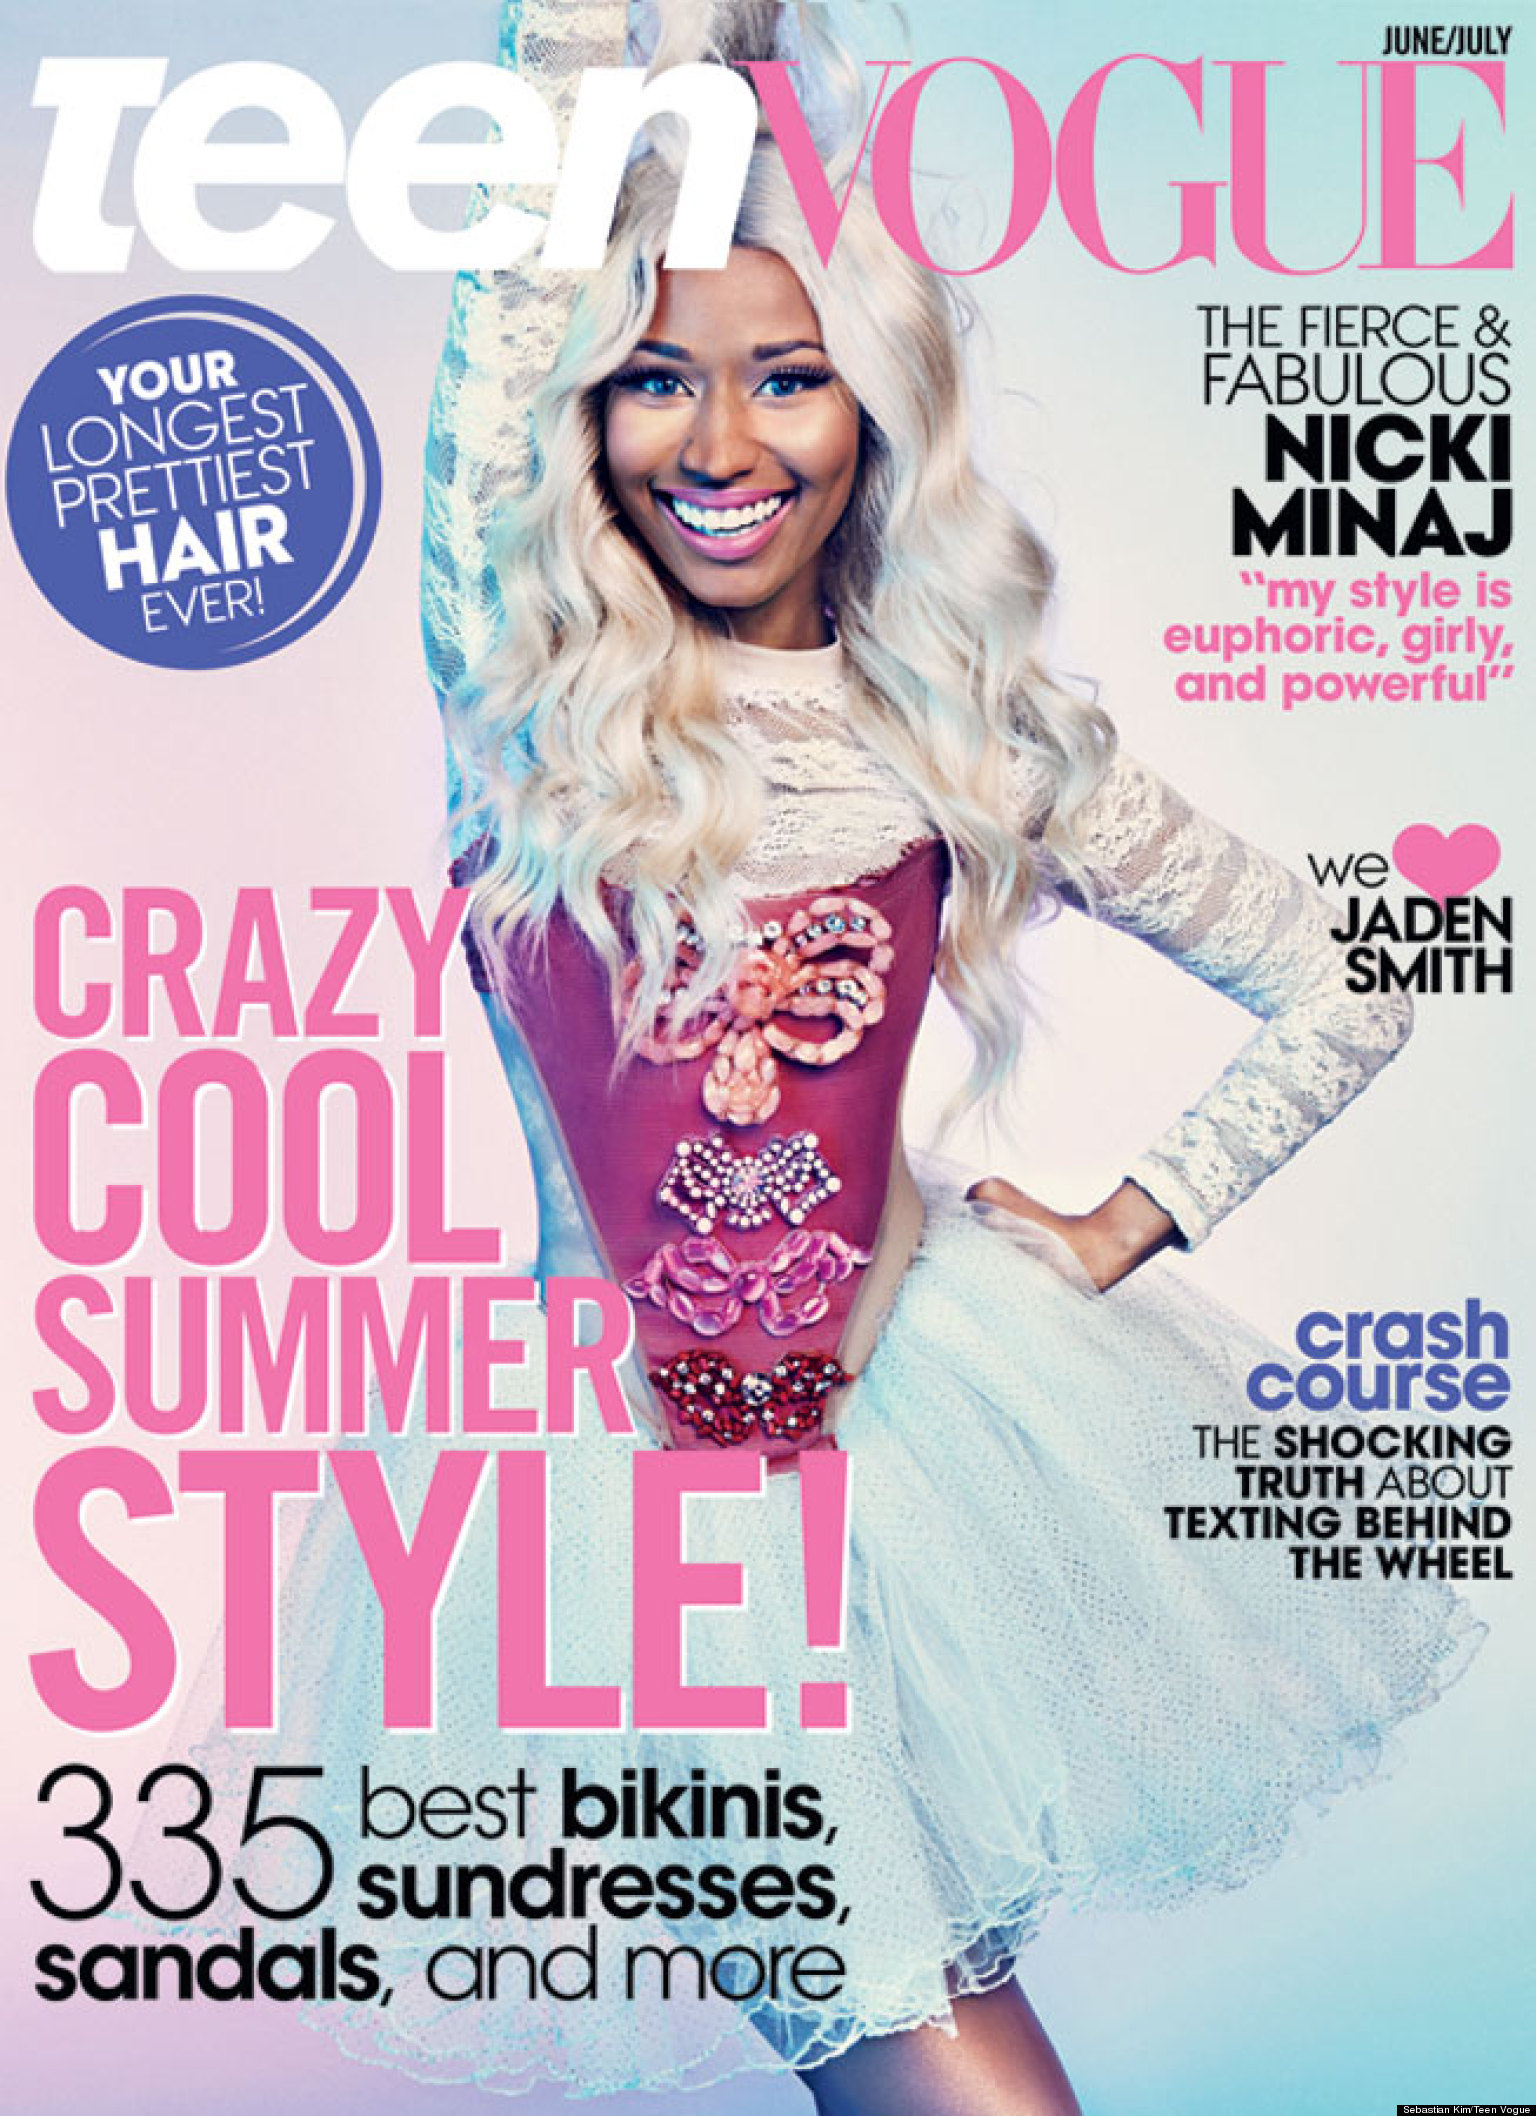 Teen Vogue Magazine Us March 2015 Cover: Nicki Minaj's Teen Vogue Cover Reminds Us Of Her Costume